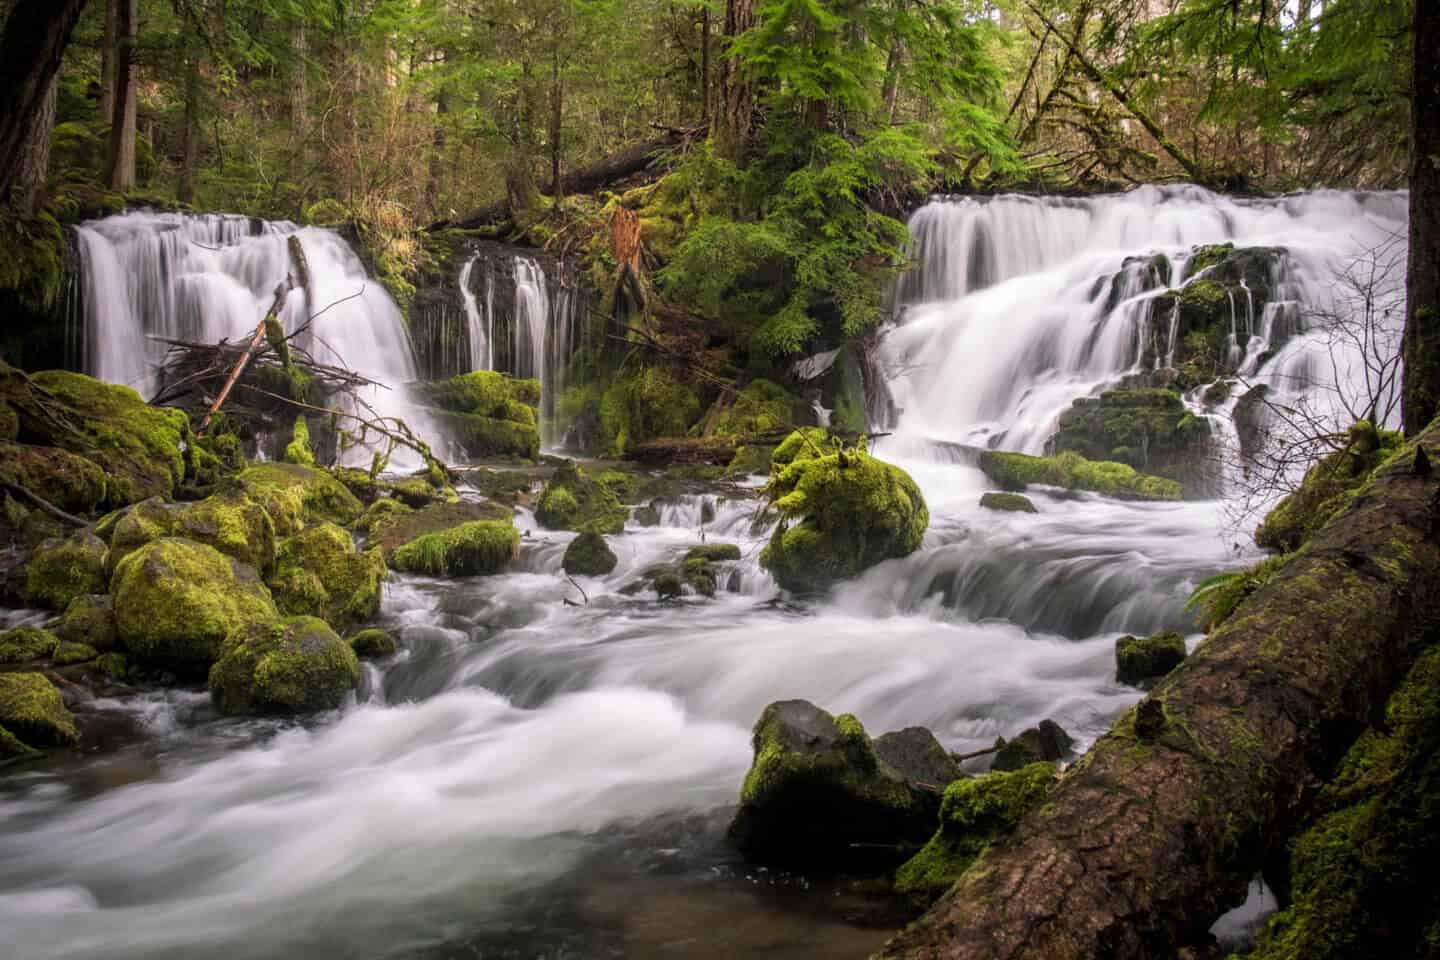 Pearsony Falls in Prospect, Oregon in a fairytale forest setting.